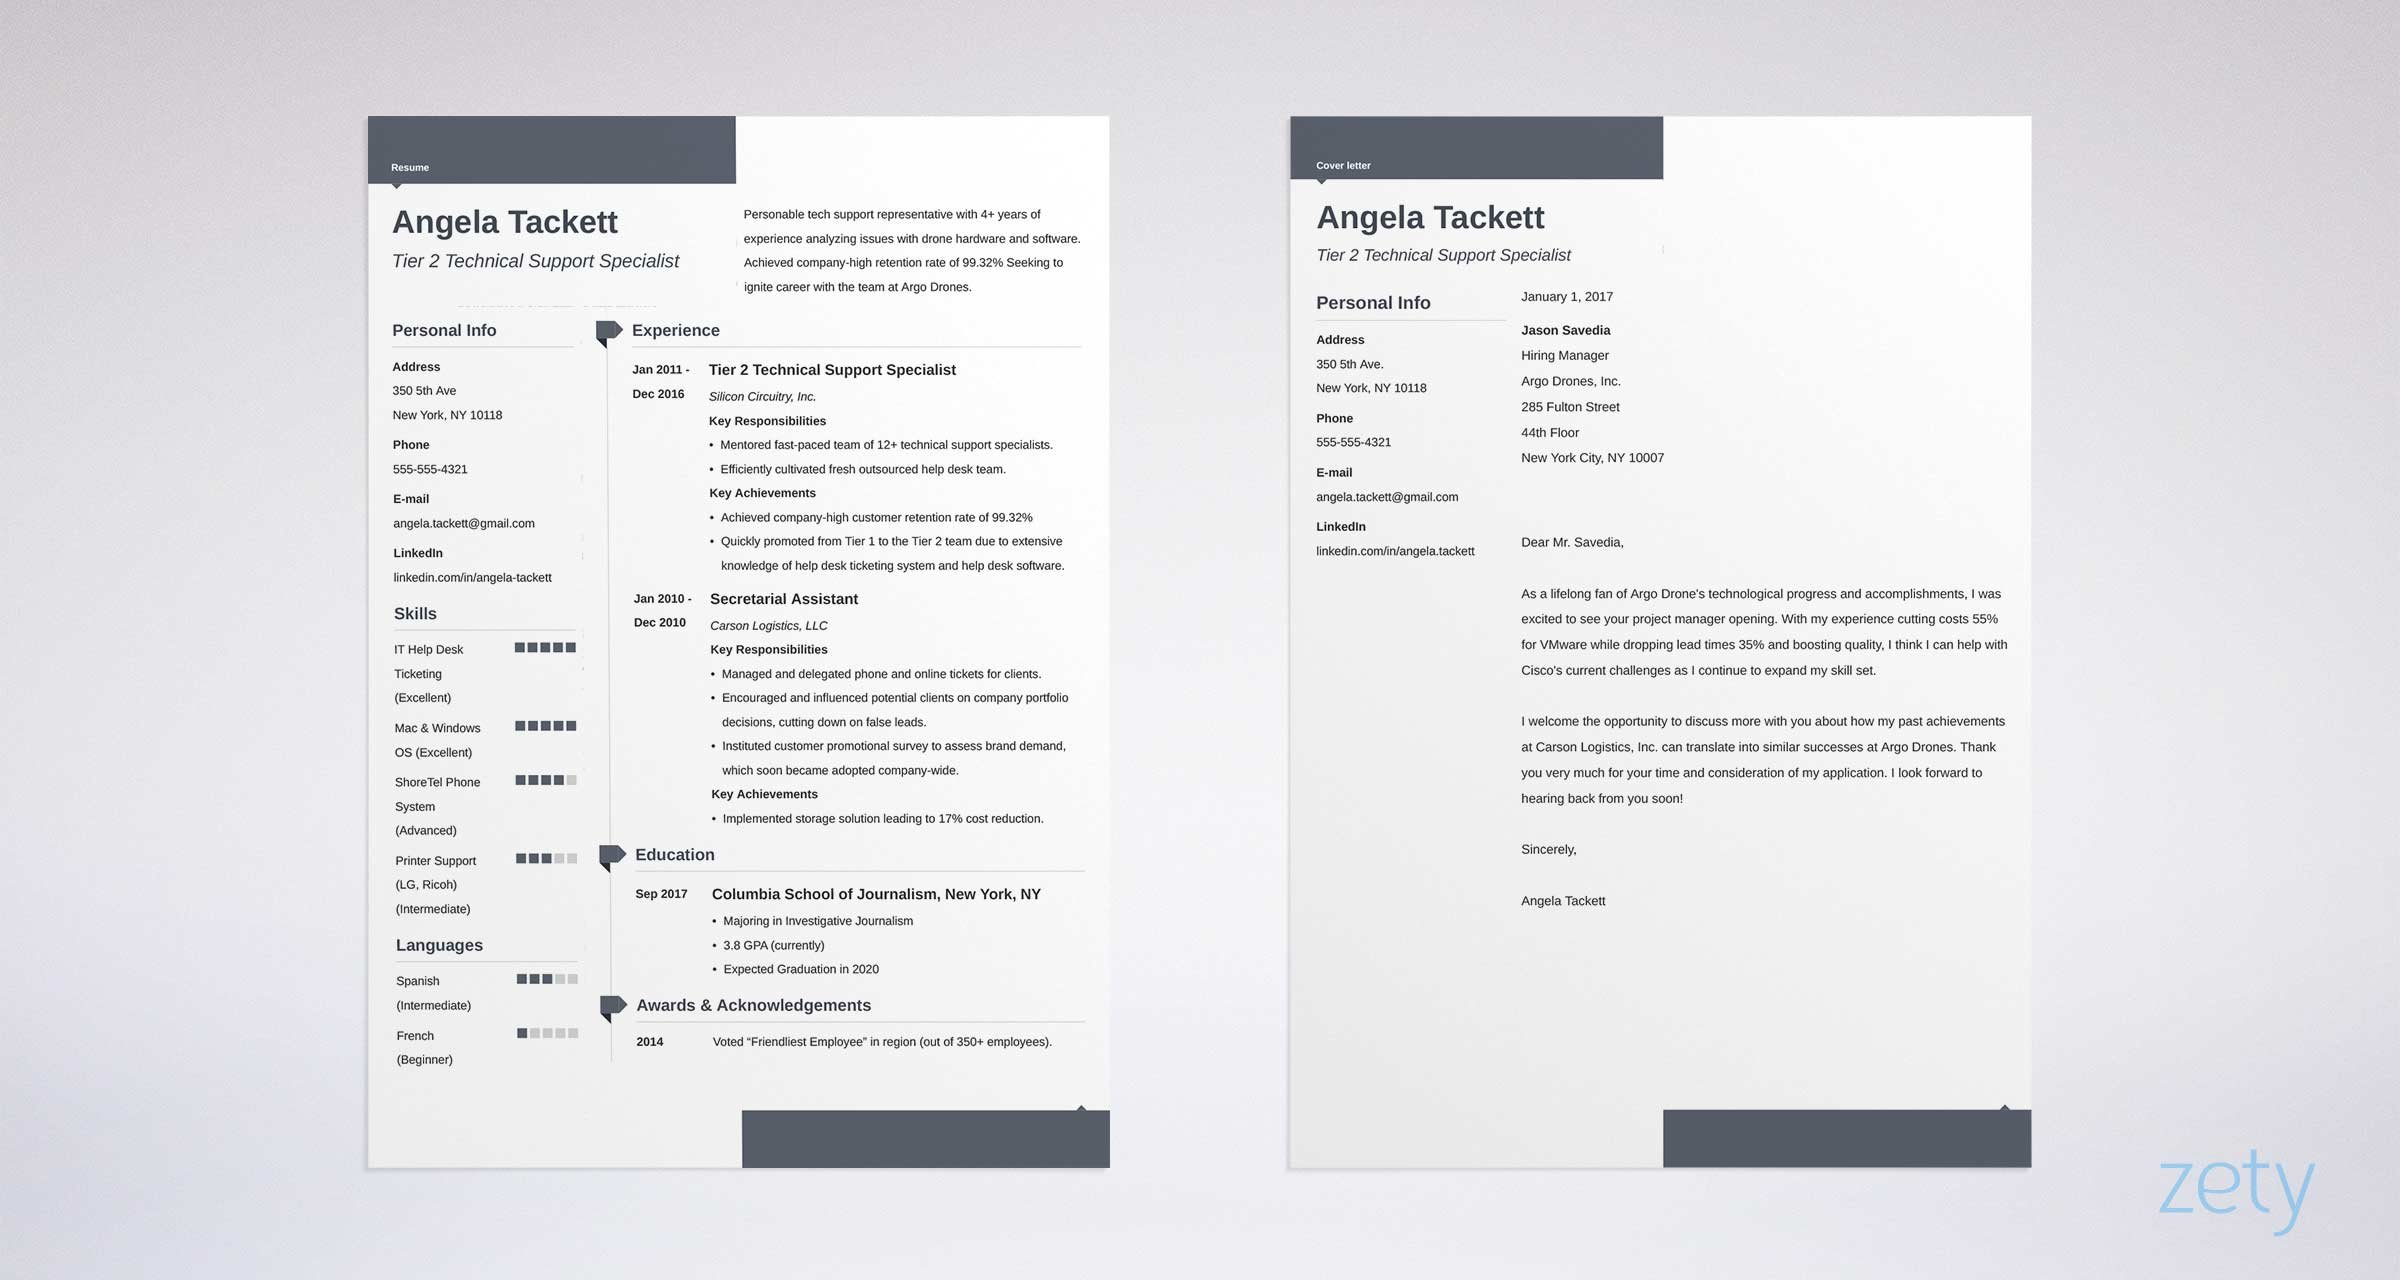 Free resume templates 17 downloadable resume templates to use elegant cover letter and resume templates thecheapjerseys Images